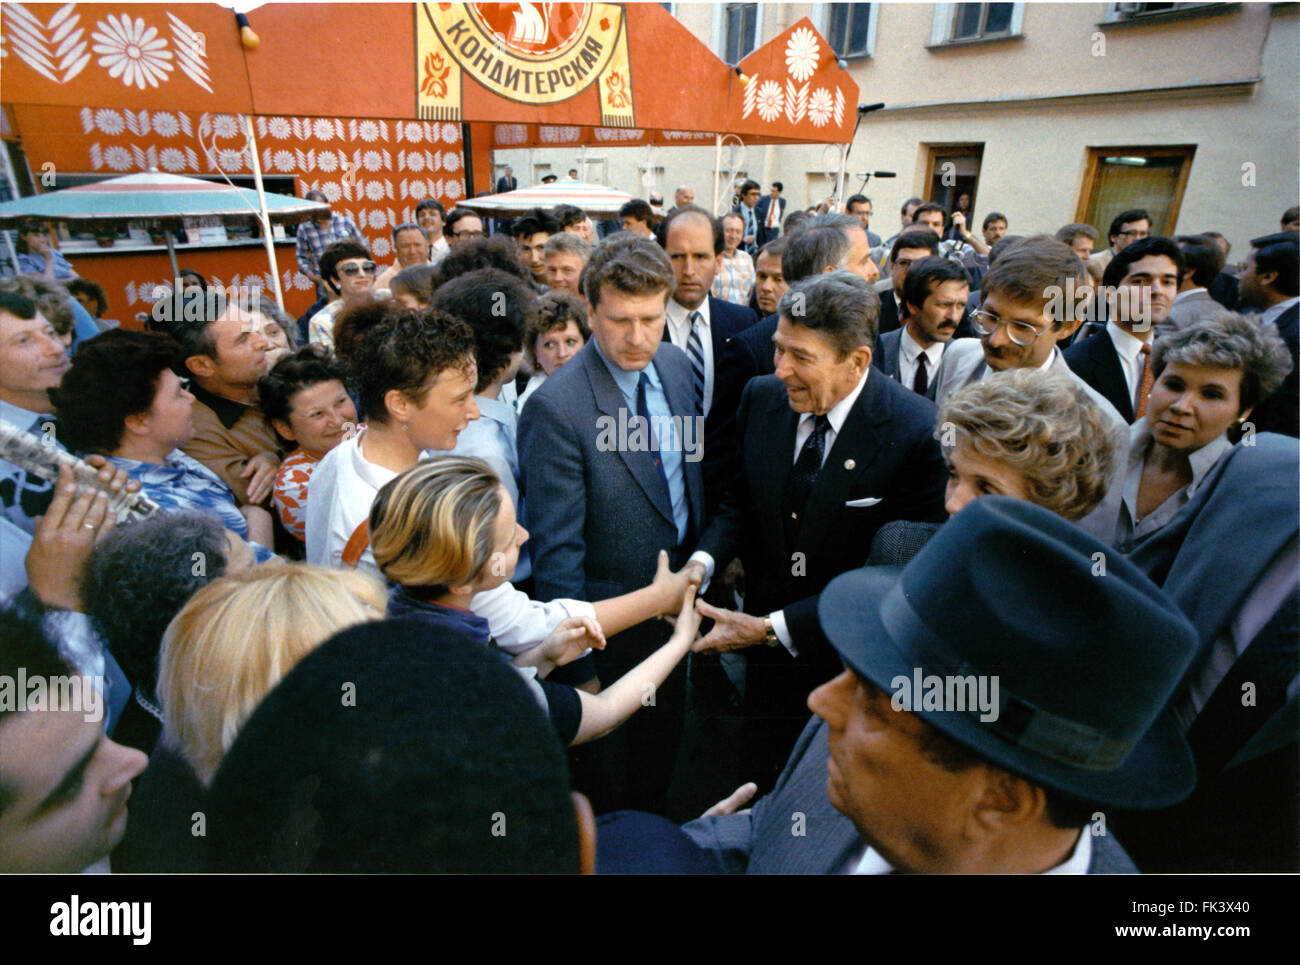 Soviet CitizensStock Photos and Images